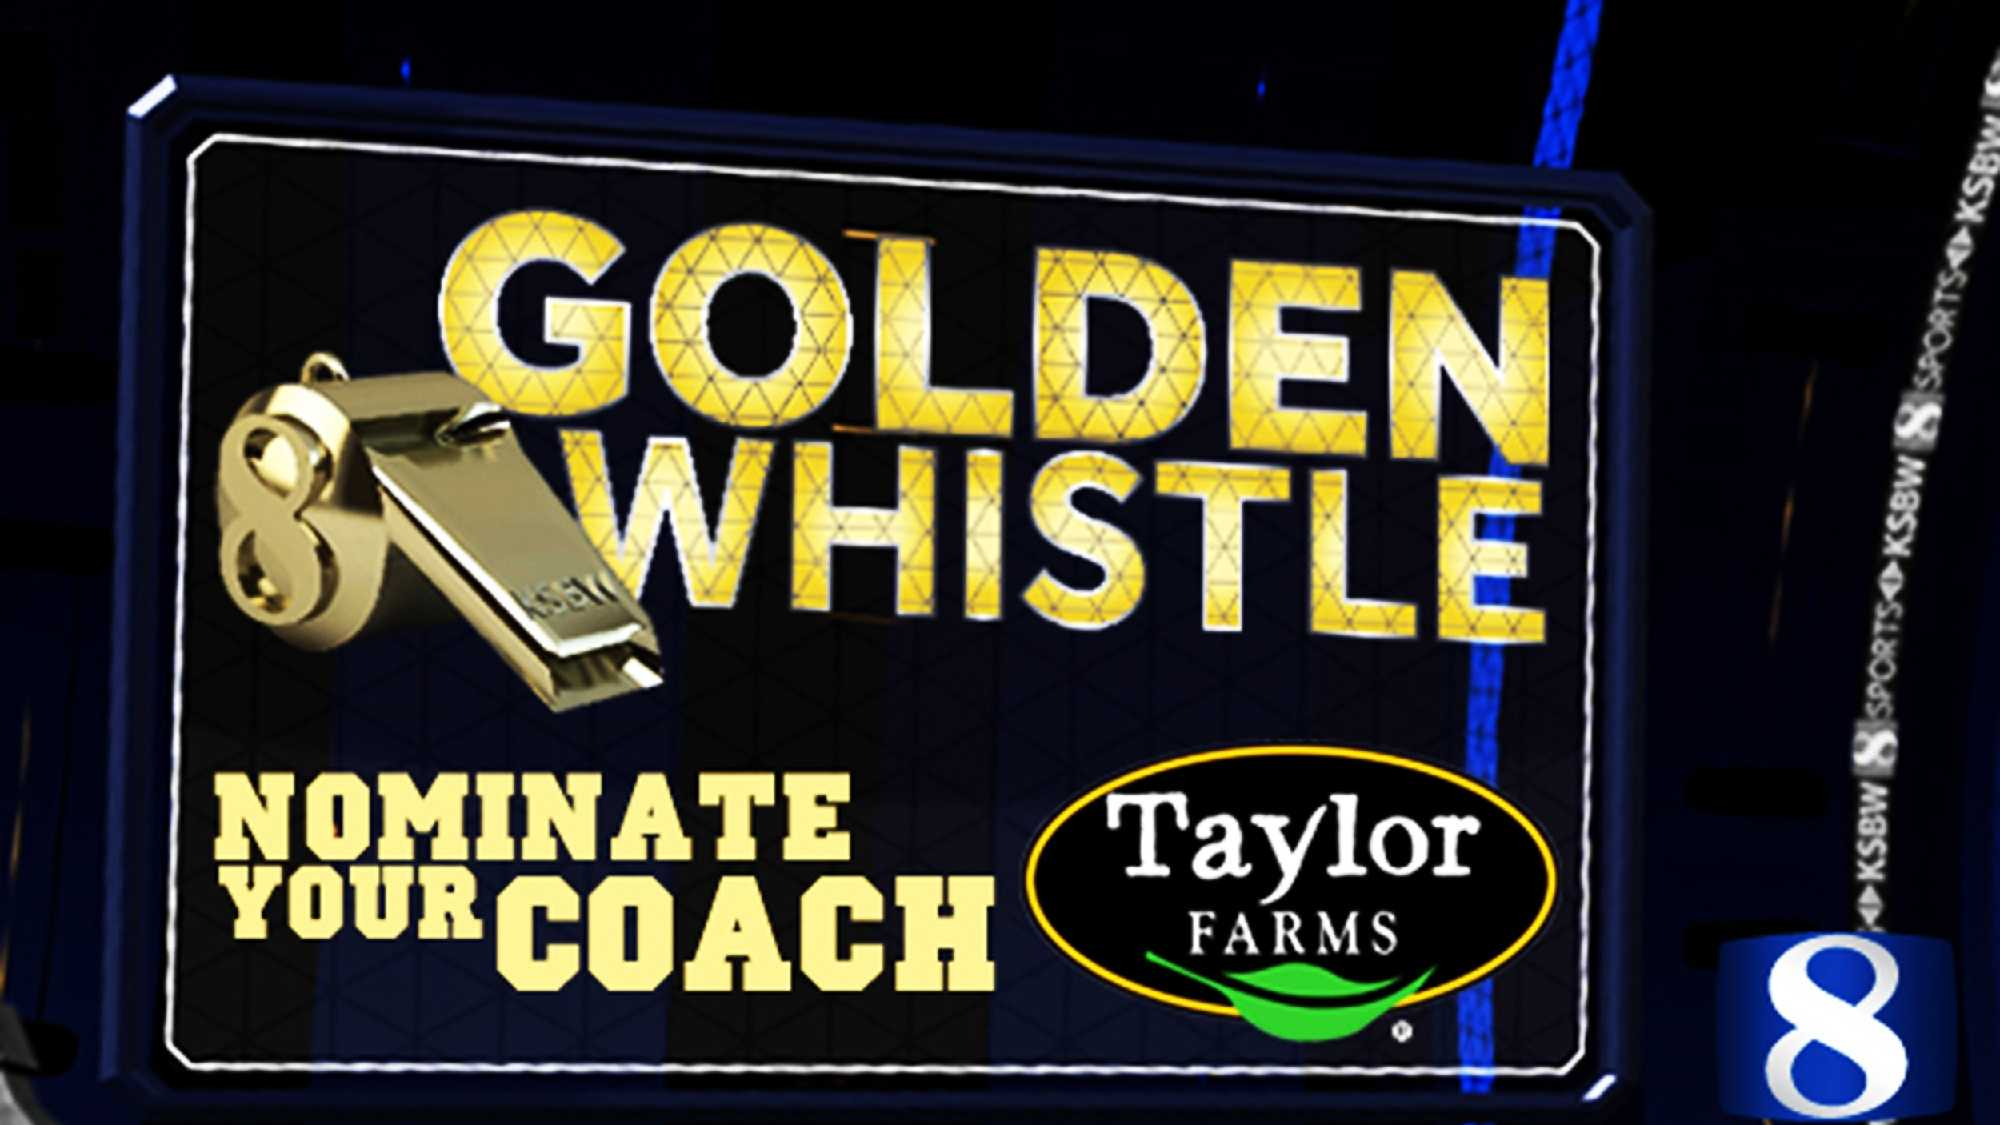 Golden Whistle Award